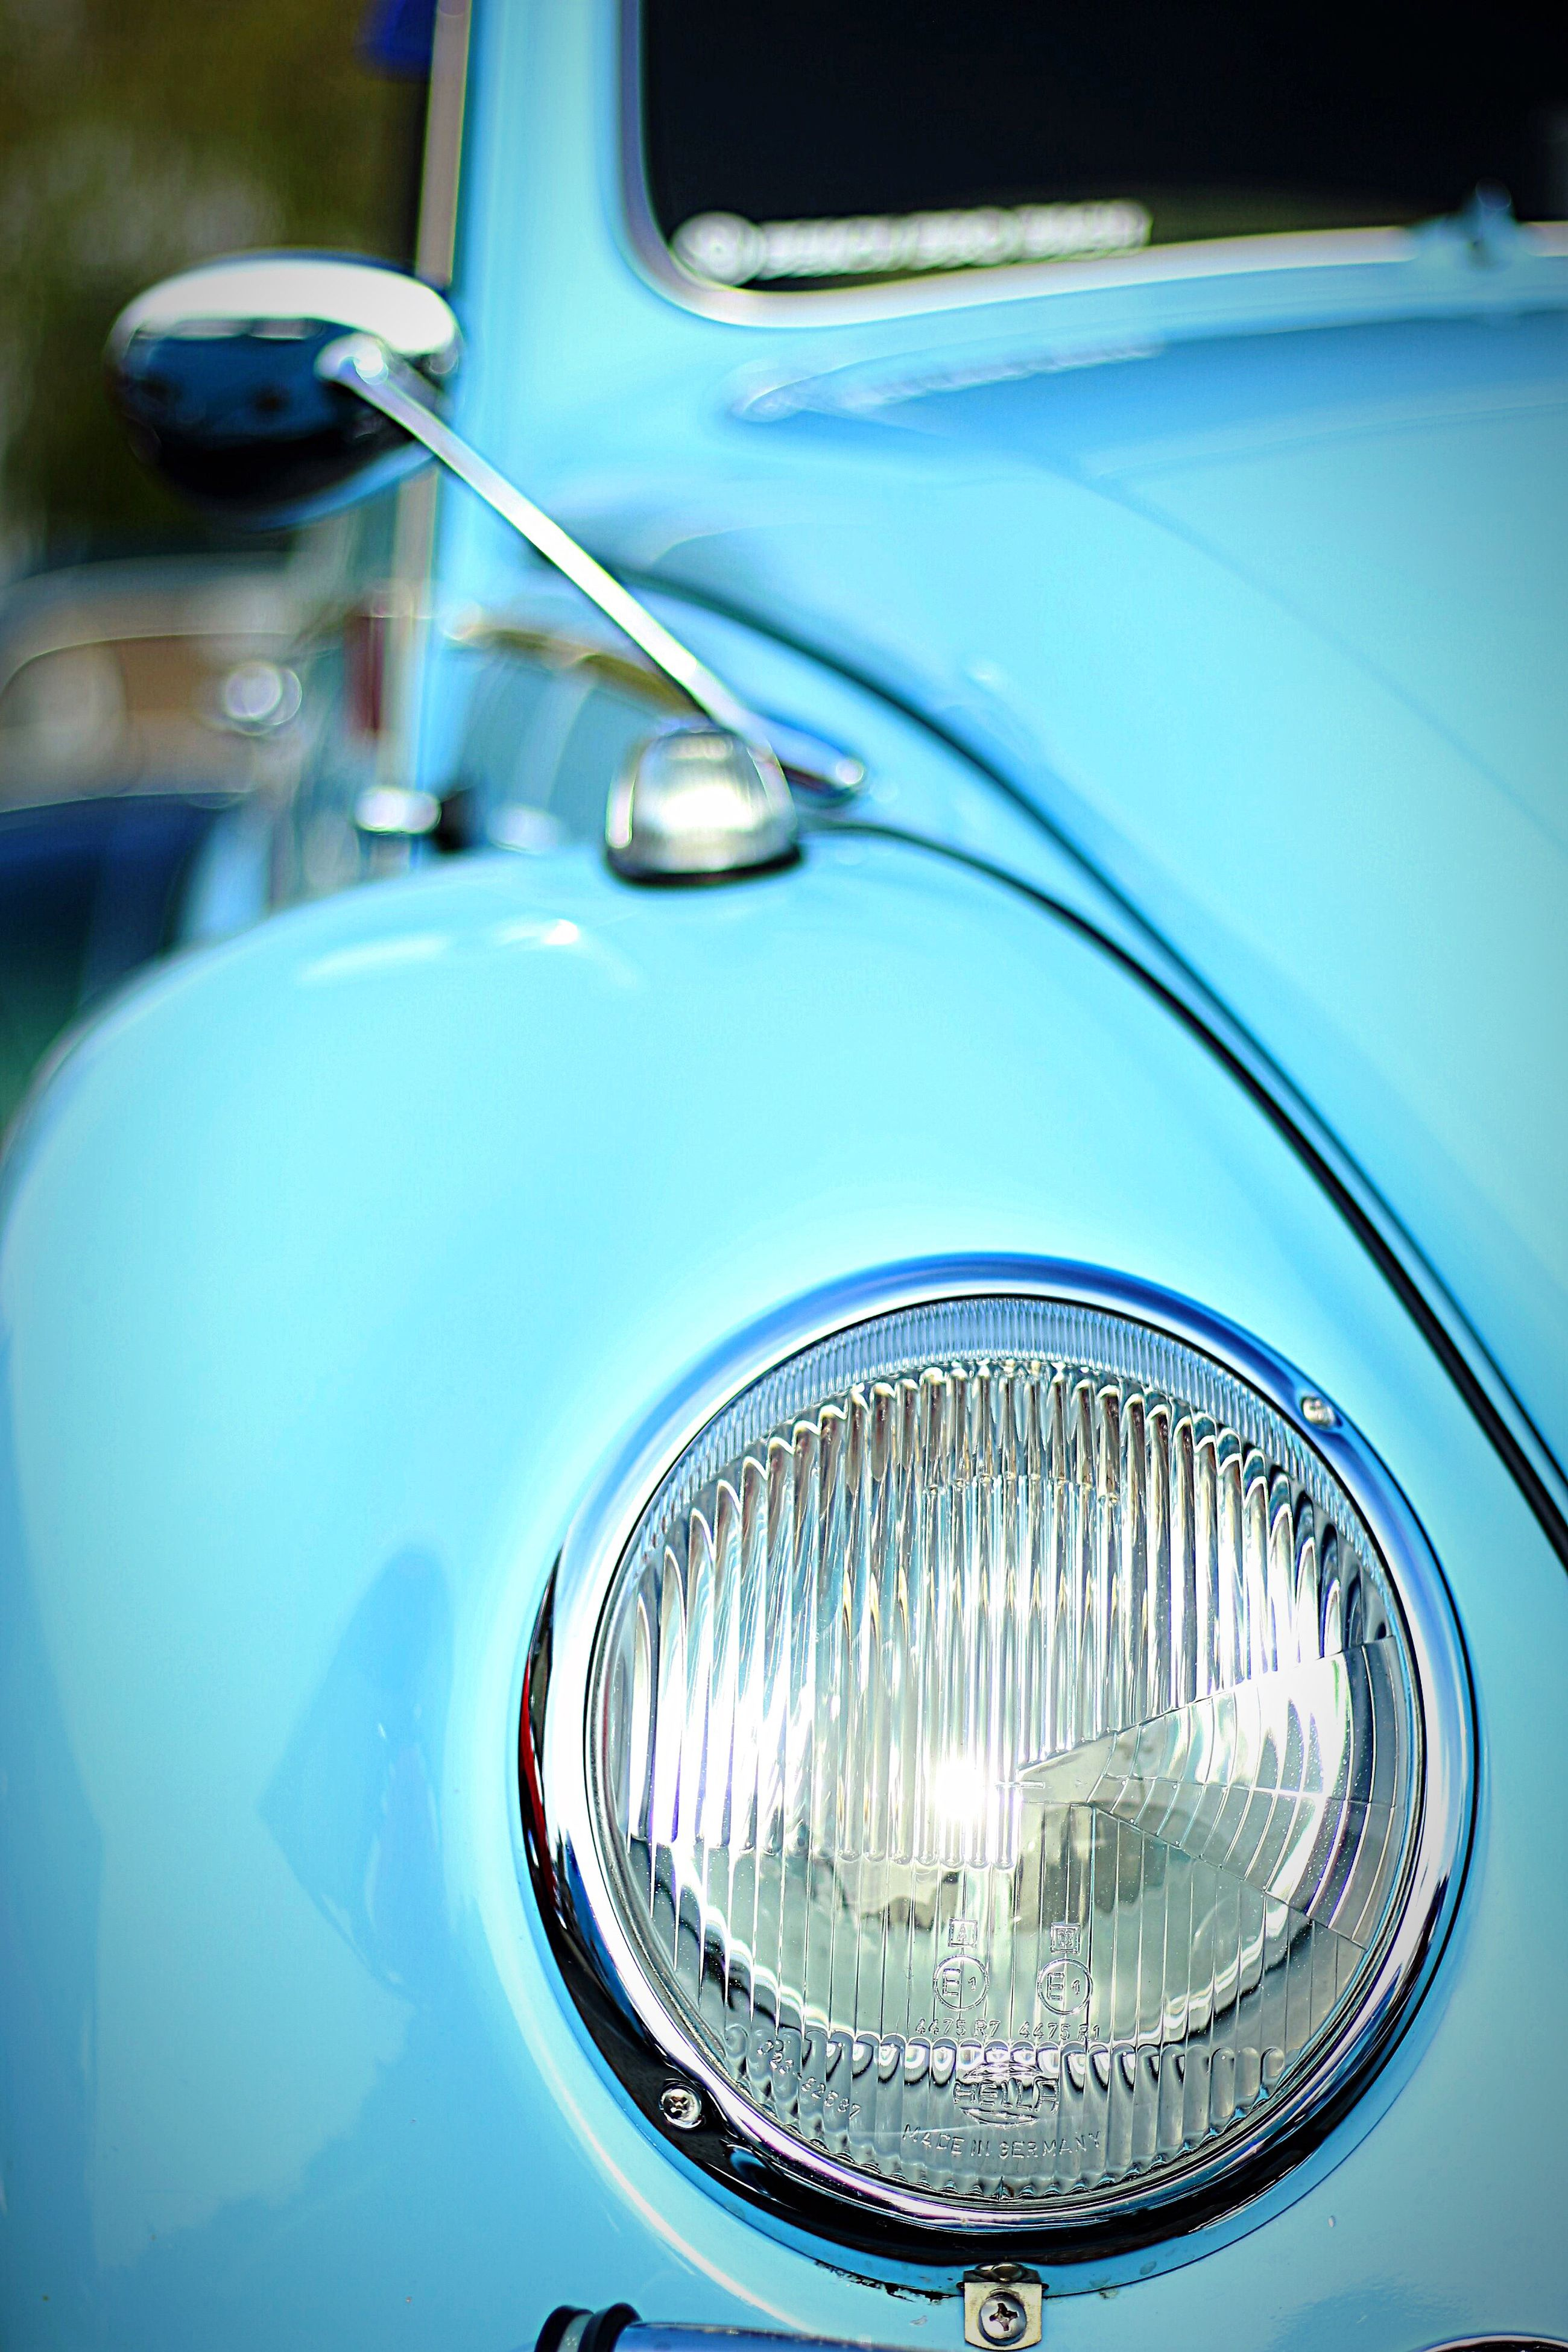 car, mode of transport, transportation, headlight, land vehicle, vintage car, luxury, reflection, outdoors, no people, day, blue, close-up